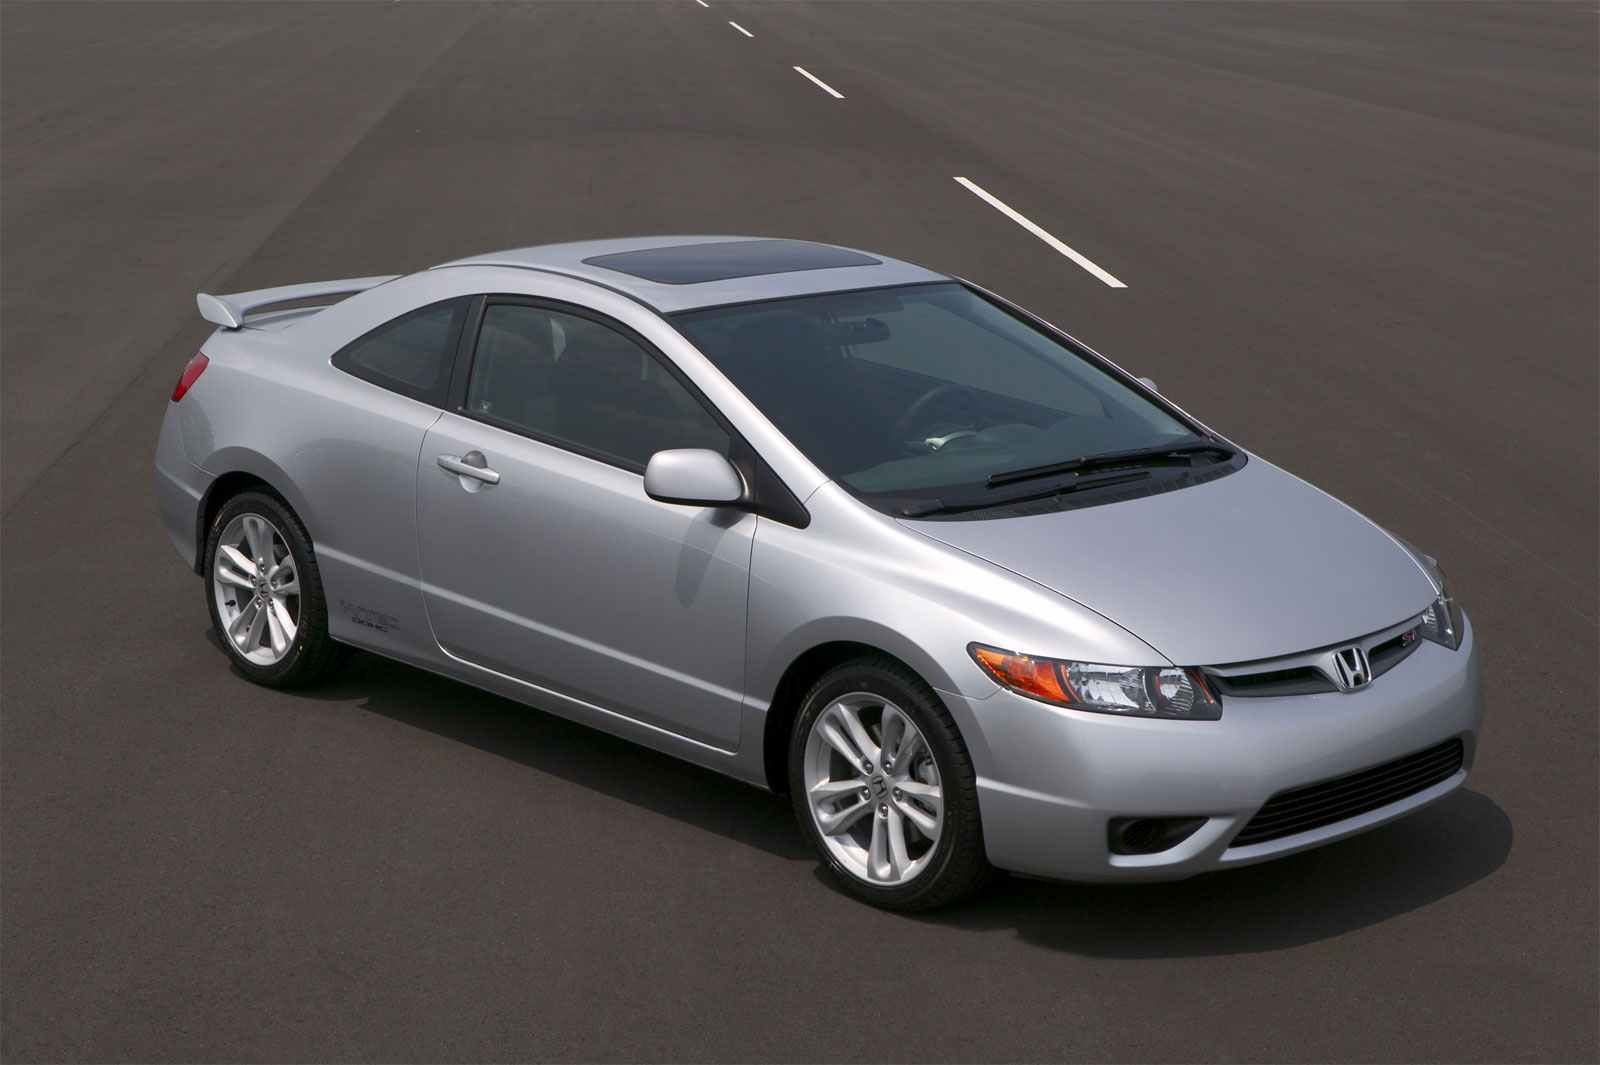 honda civic coupe ix 2011 images #7